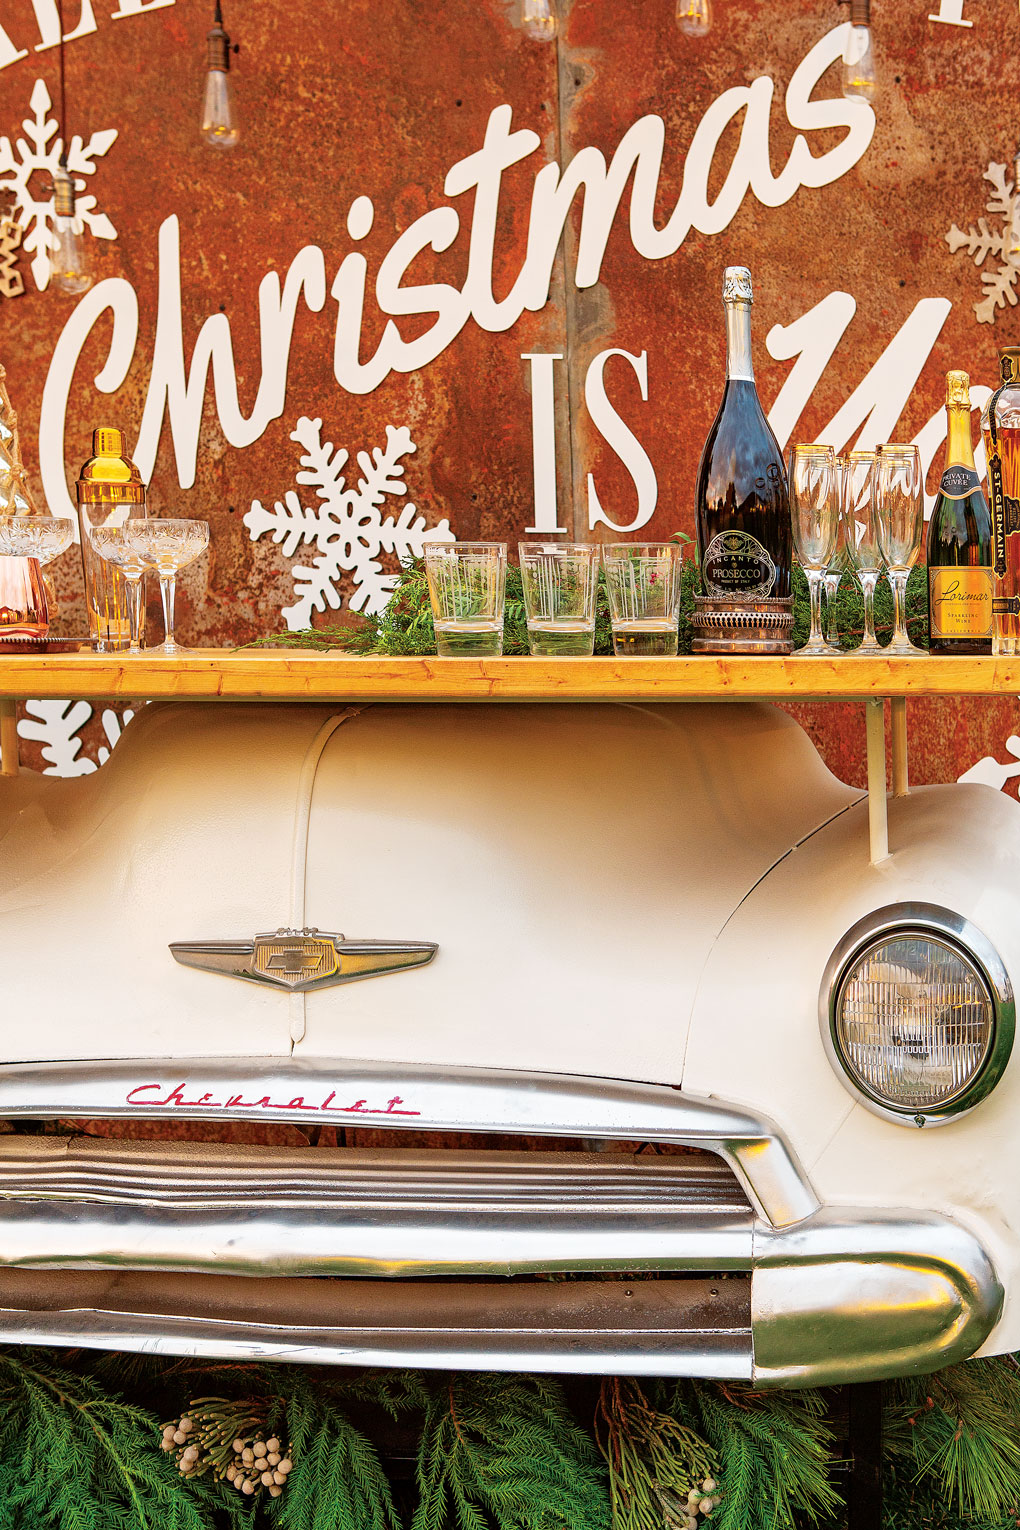 A white, genuine front end of a 1949 Chevy crafted into a barnyard bar display topped with champagne, drinks and glasses.